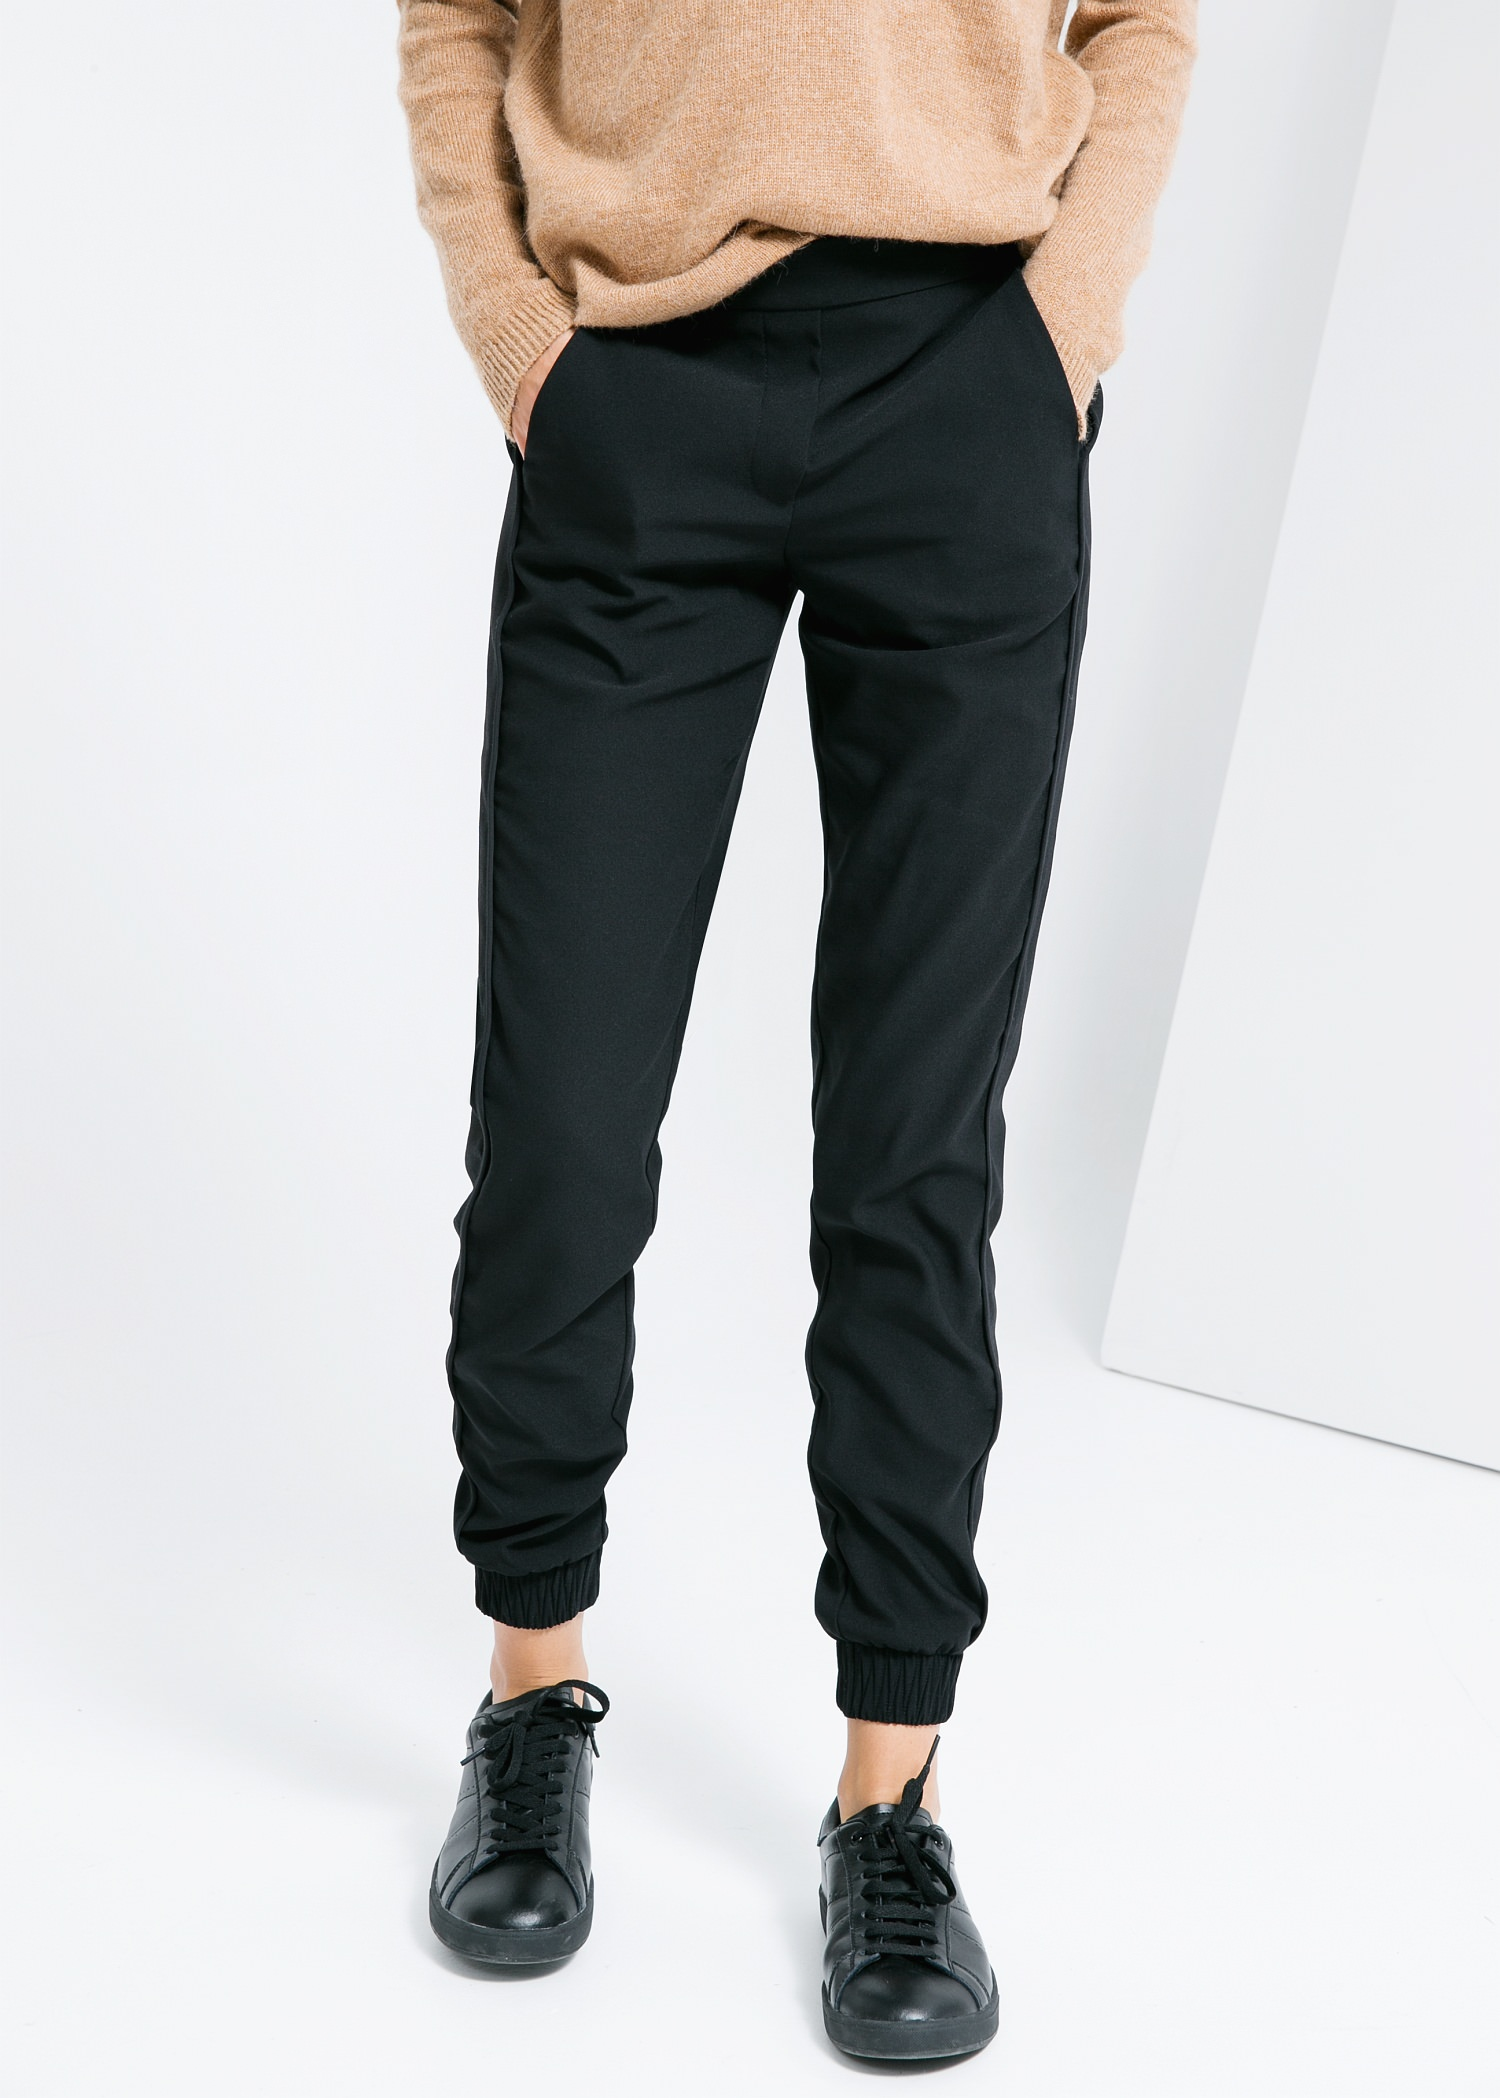 Flowy trousers - Trousers for Women | MANGO